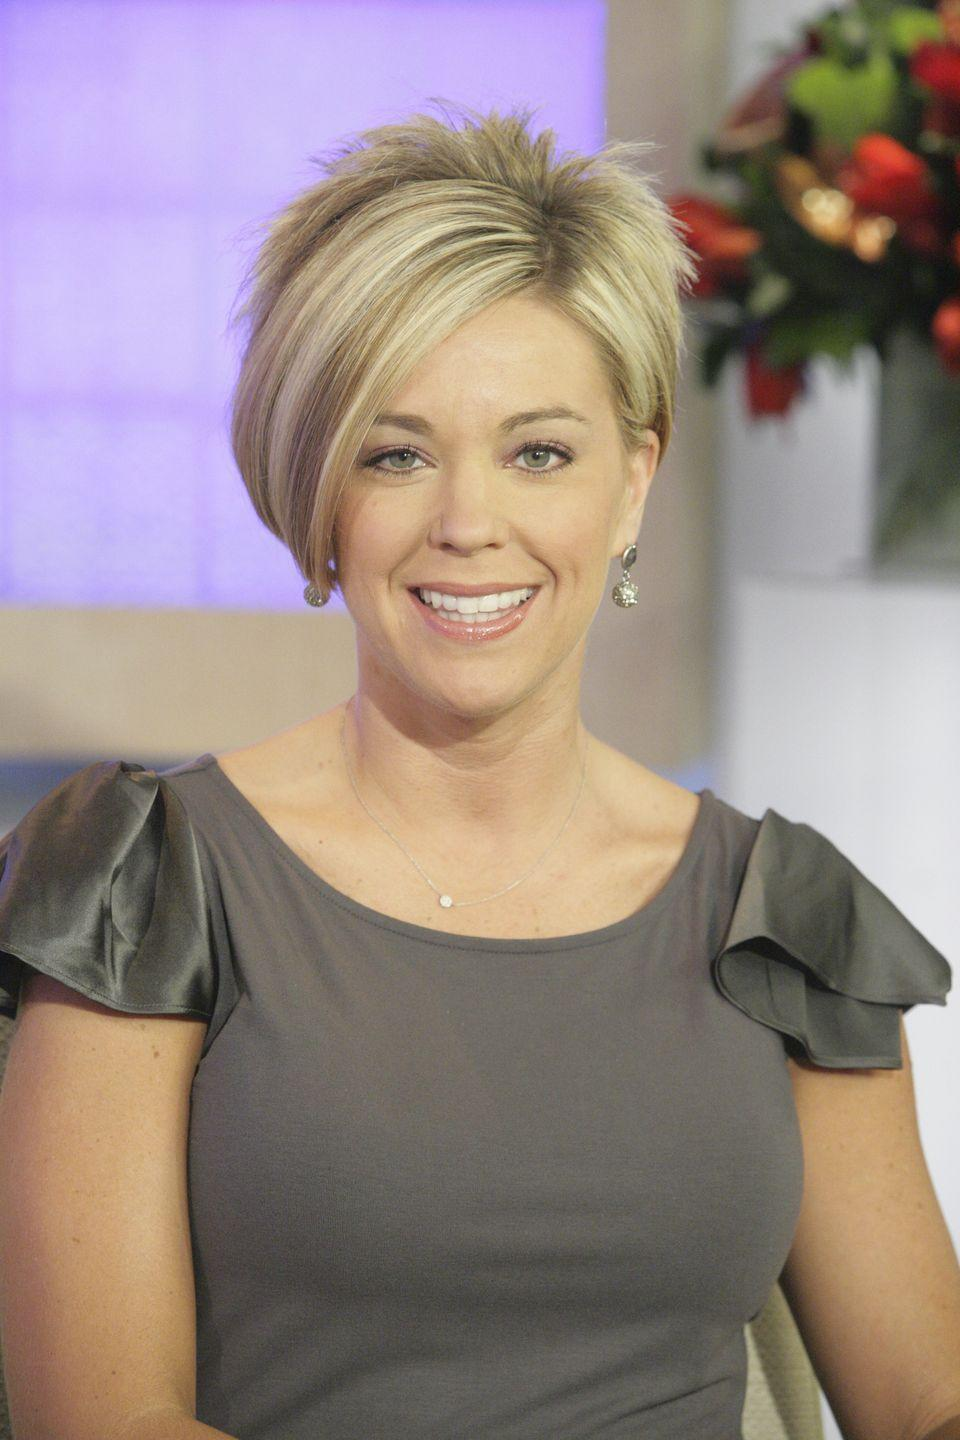 <p>Gosselin was introduced to the world as the stressed-out mother of sextuplets on TLC's <em>Jon and Kate Plus Eight</em>. The original docuseries ran from 2007-2009 and blasted the normal family into worldwide recognition. </p>